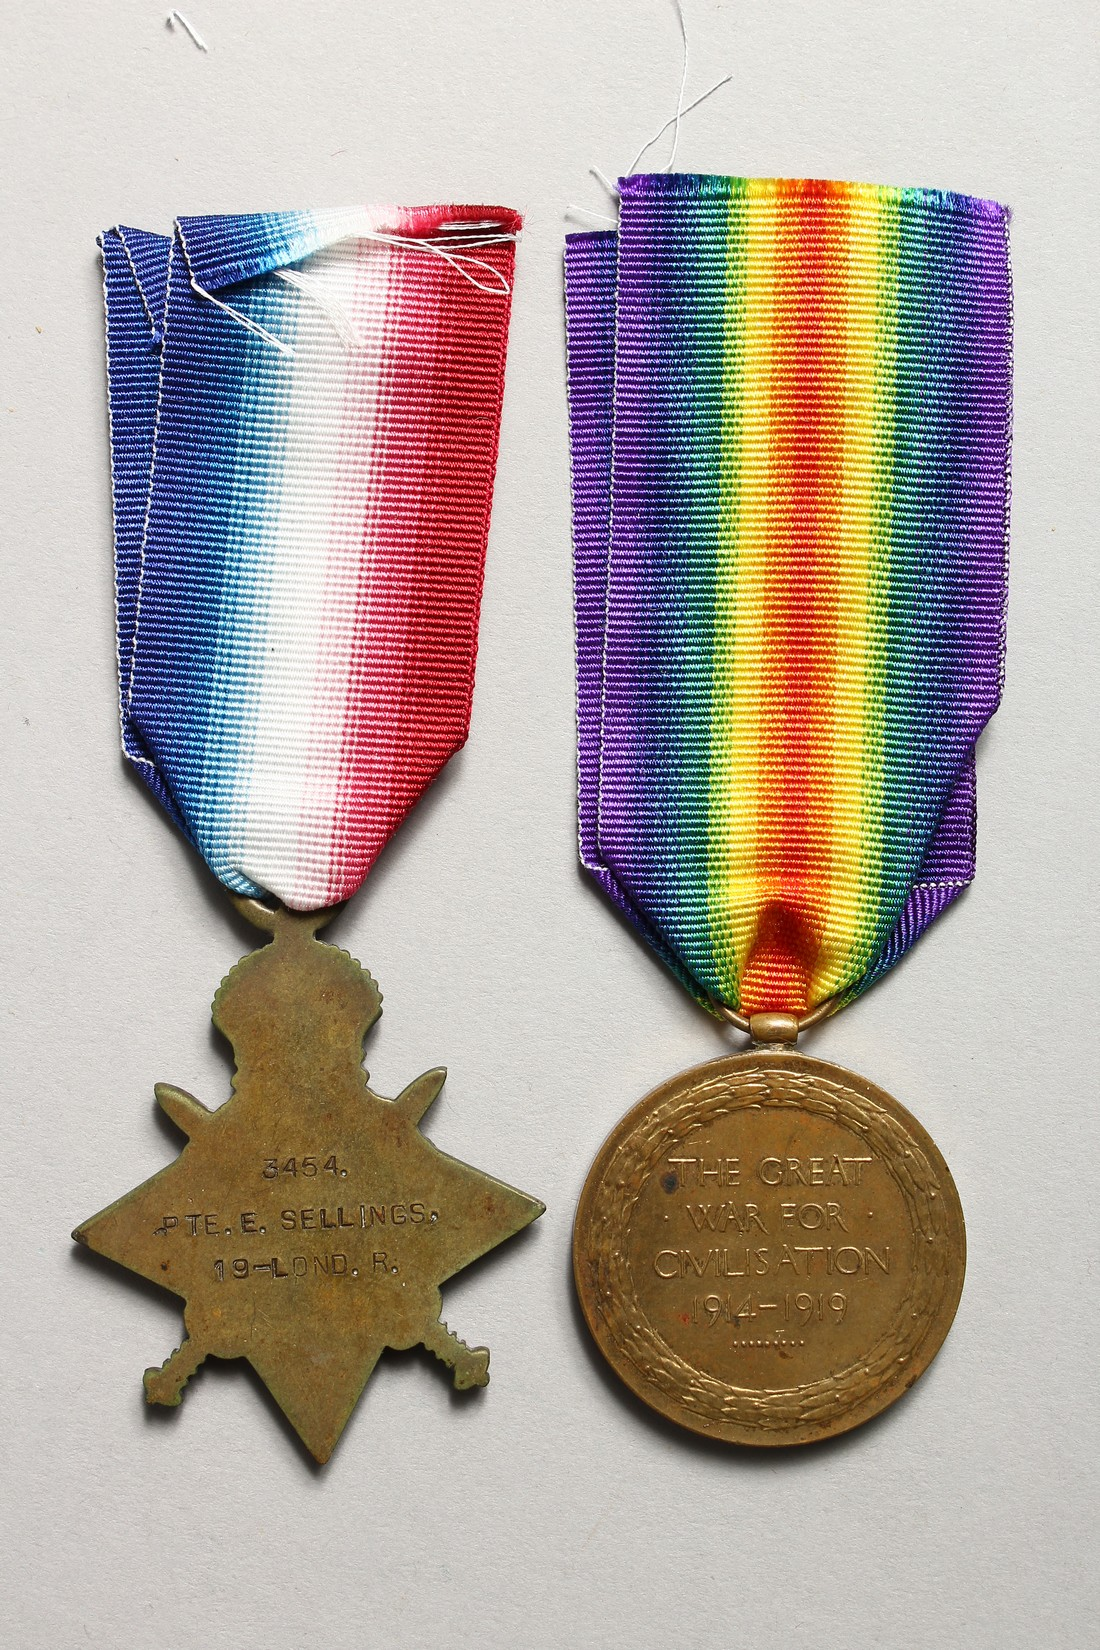 THE MEDALS OF ERNEST SELLINGS, 19 LONDON REG. 3454 610808. - Image 3 of 7